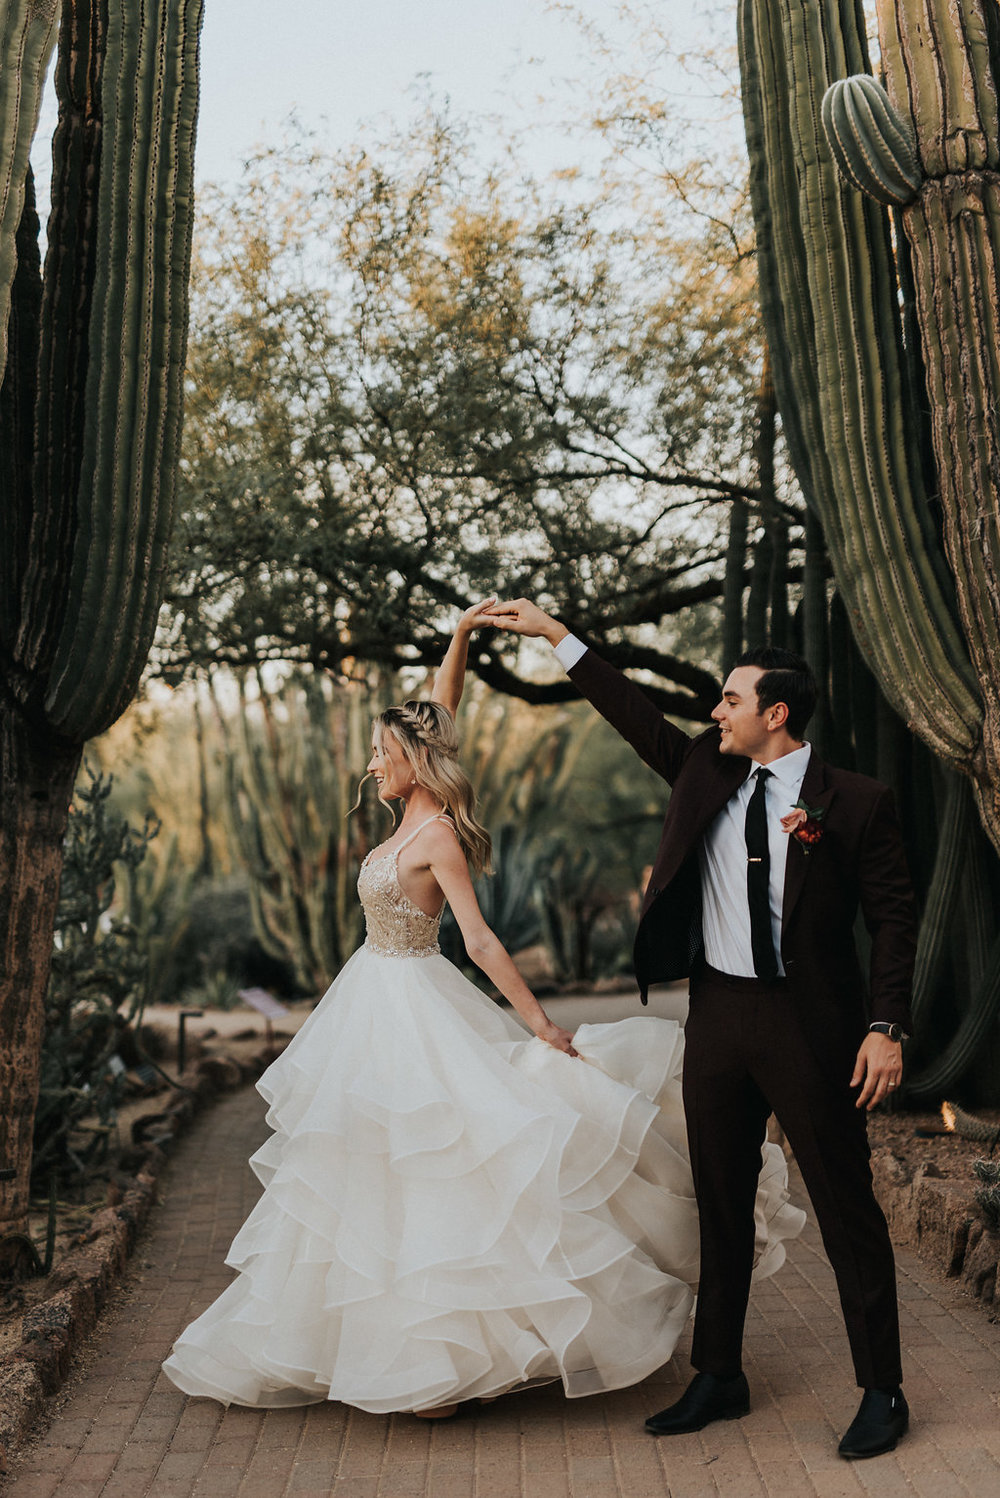 A Colorful Arizona Sunset Wedding at the Desert Botanical Gardens - Tremaine Ranch Arizona Wedding Event Vintage Furniture Tableware Specialty Rentals with Jonnie and Garrett32.jpg